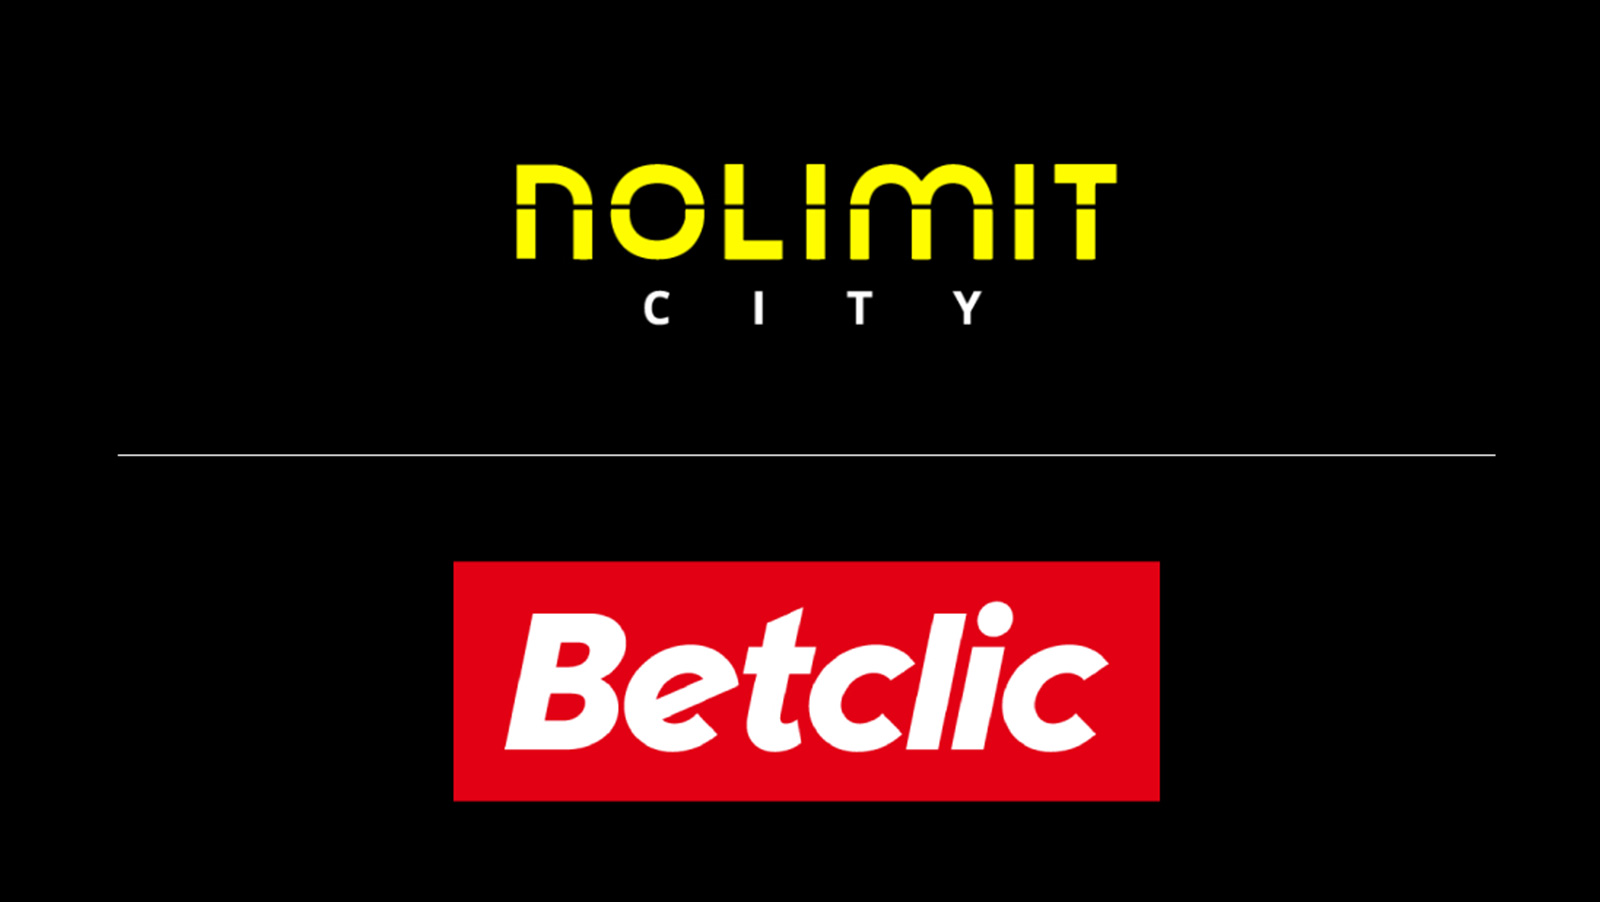 betclic-everest-group-boosts-games-portfolio-with-nolimit-city-content